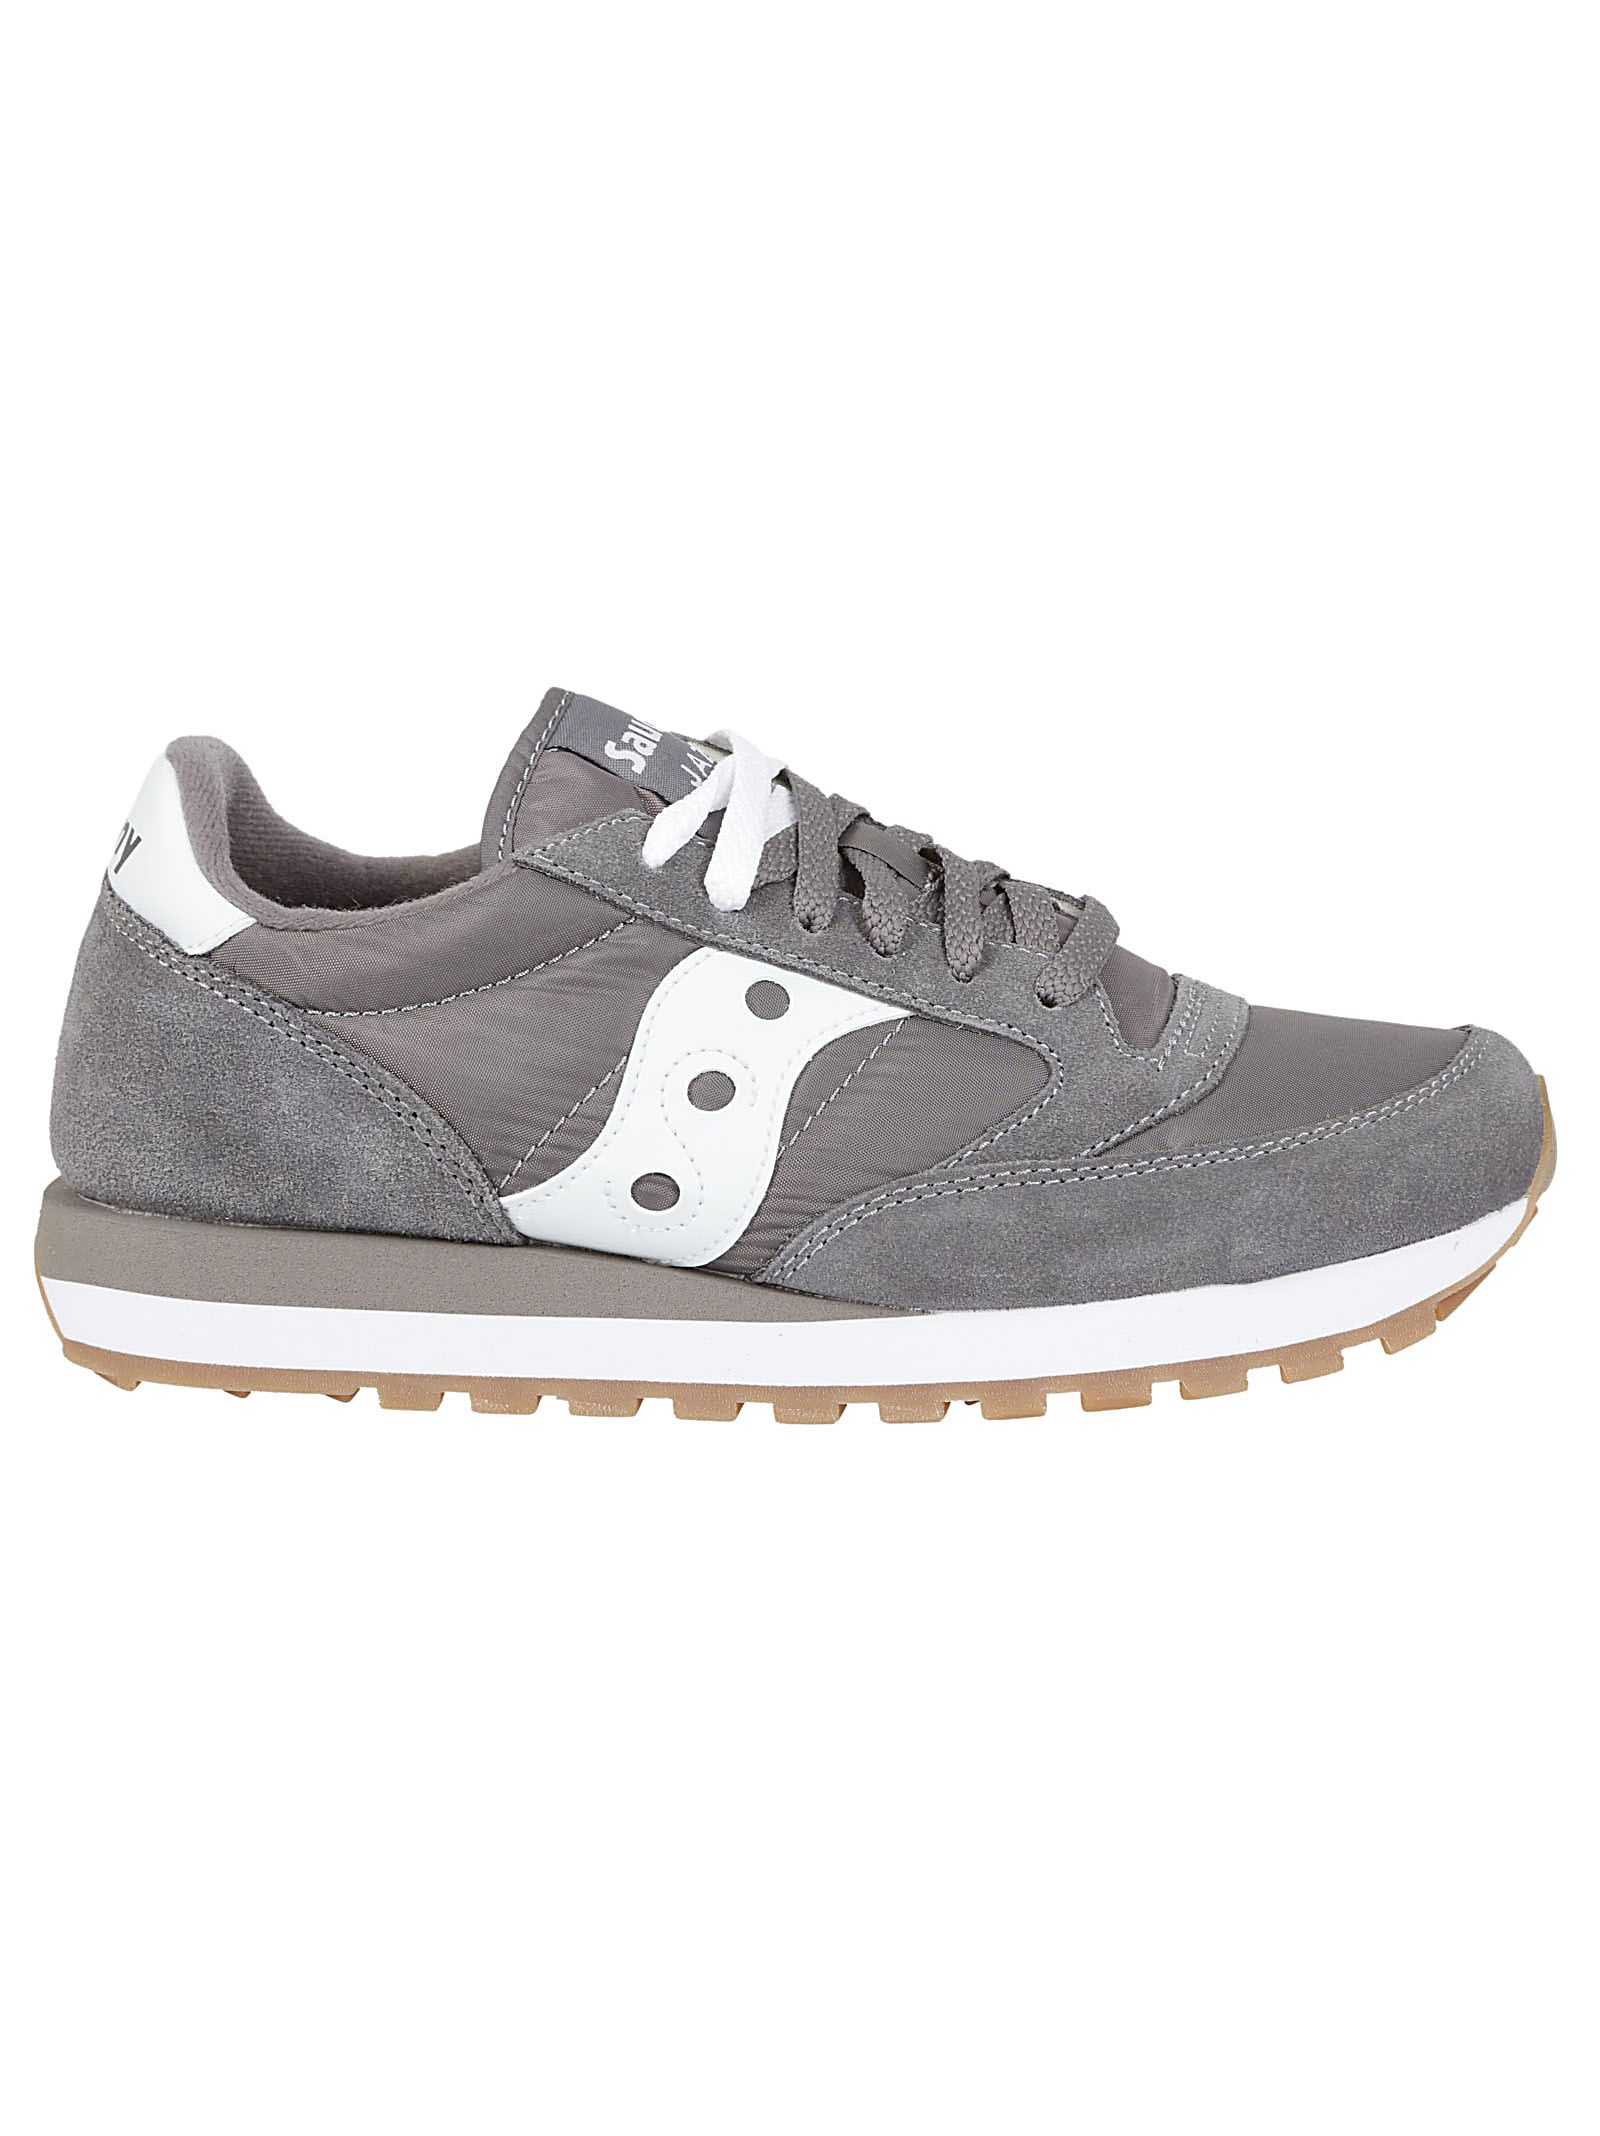 babd37b96f5a Saucony Saucony Lace-up Sneakers - Gray - 10845178